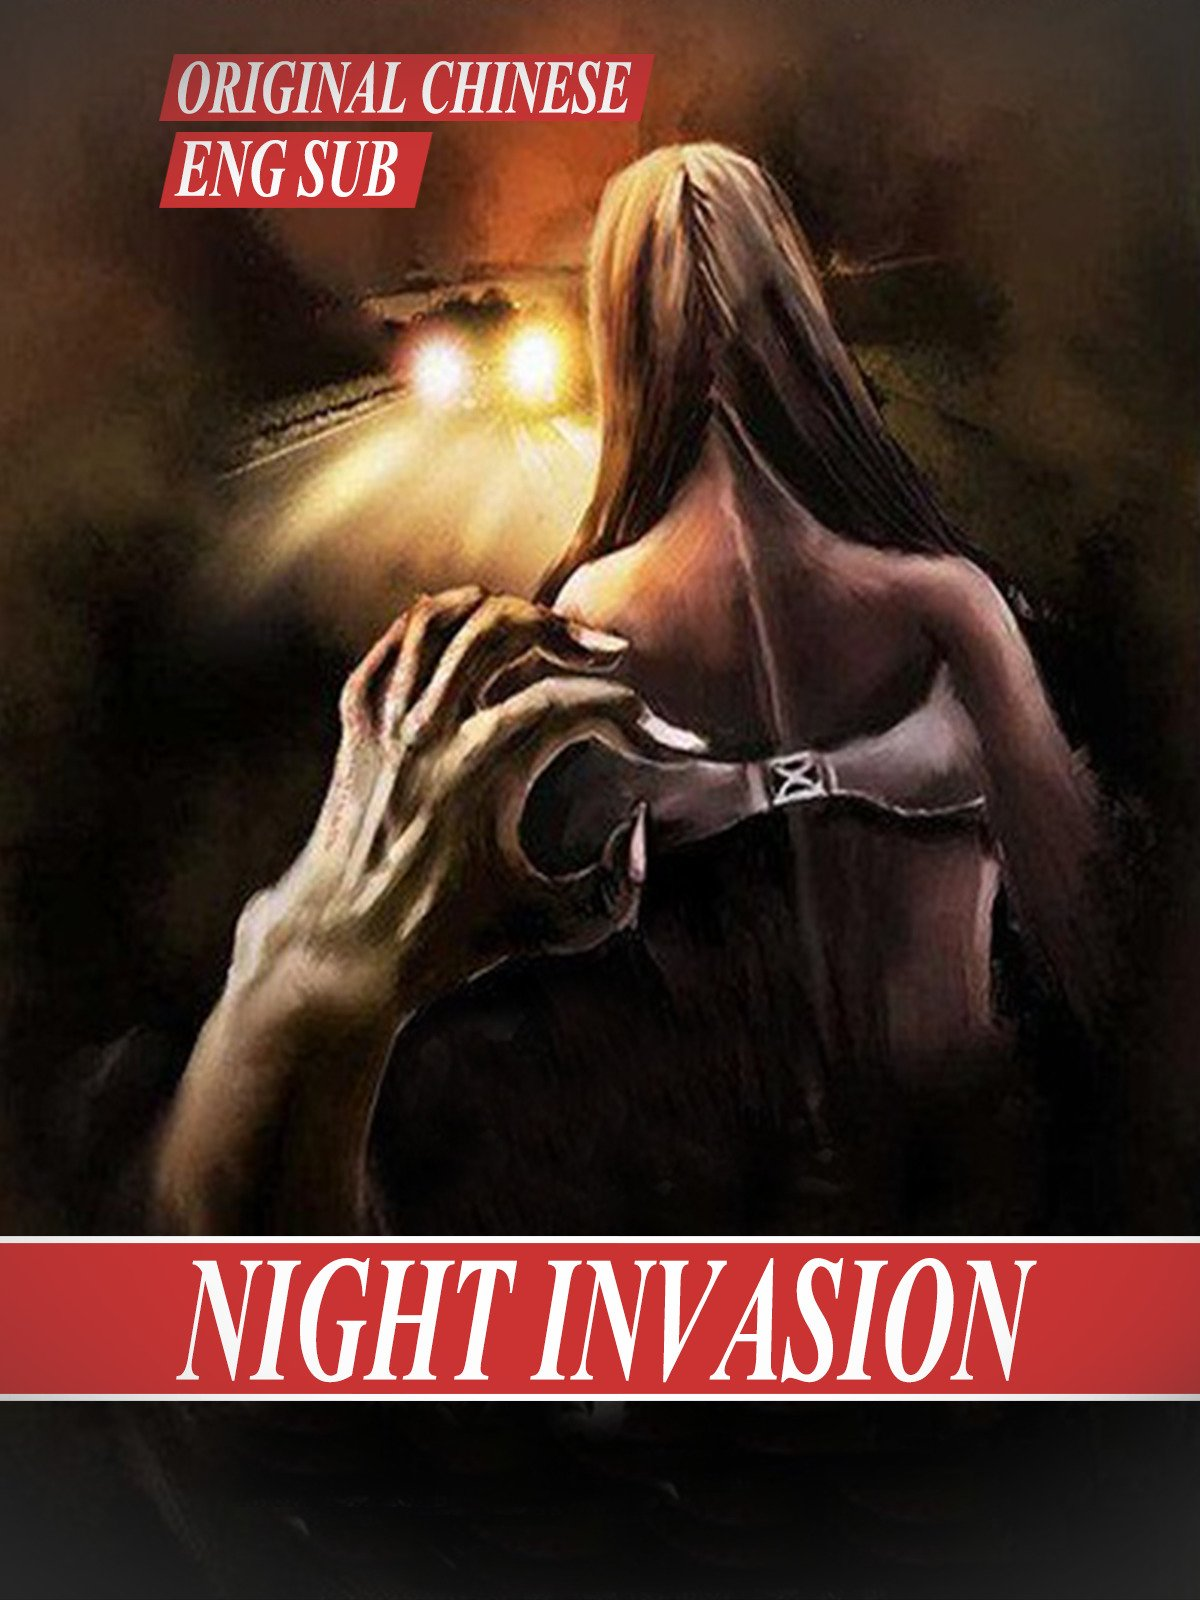 Night invasion [Eng Sub] original Chinese